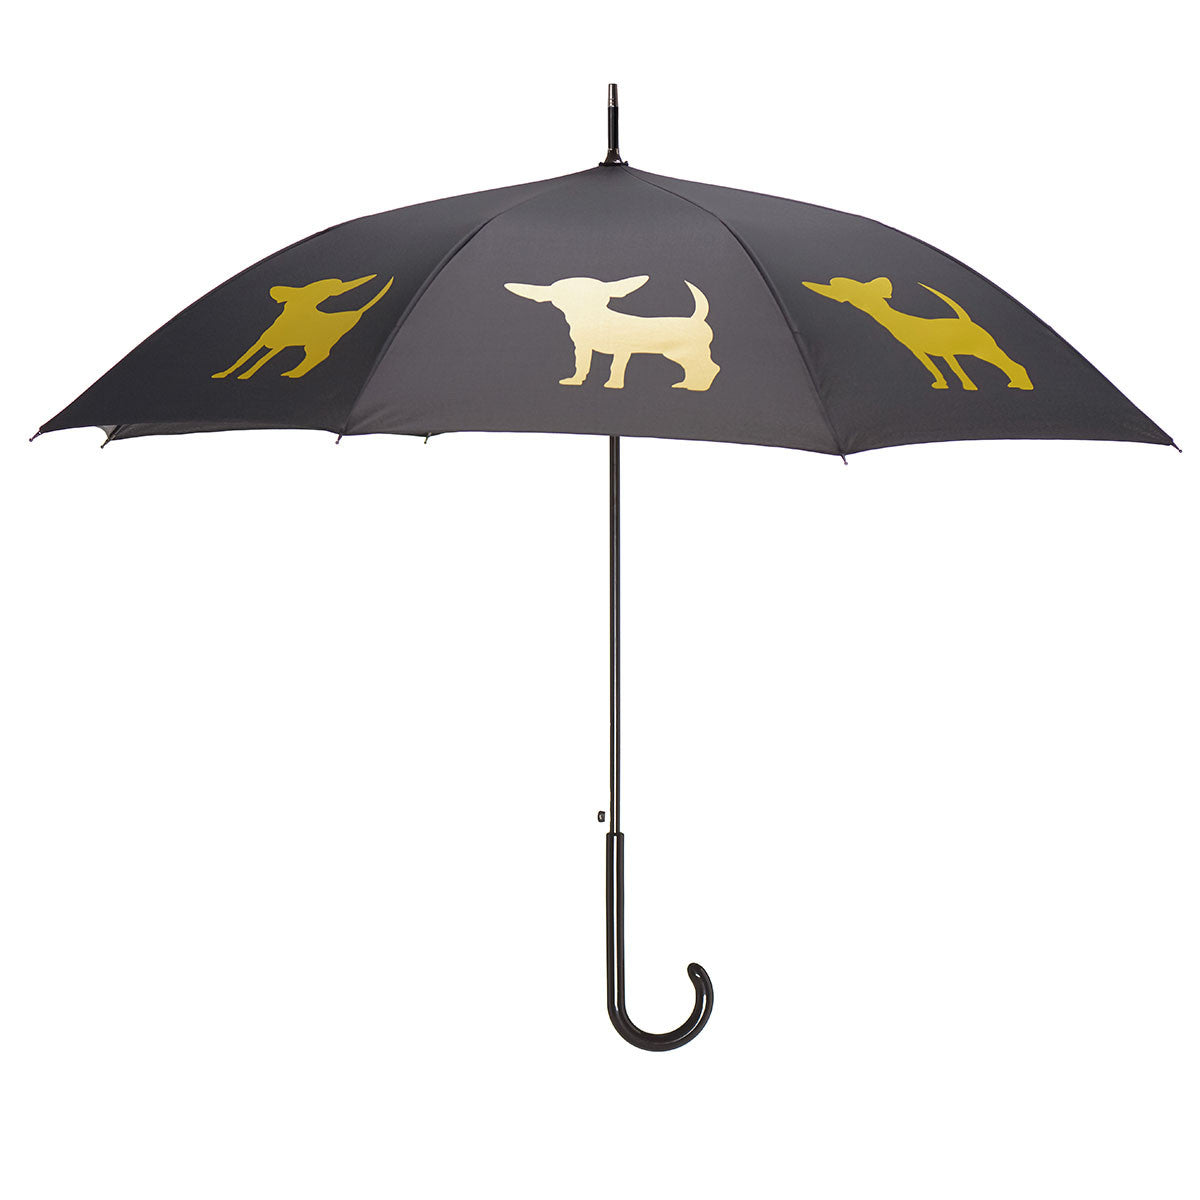 Chihuahua Umbrella Yellow on Black w/ sleeve and shoulder strap